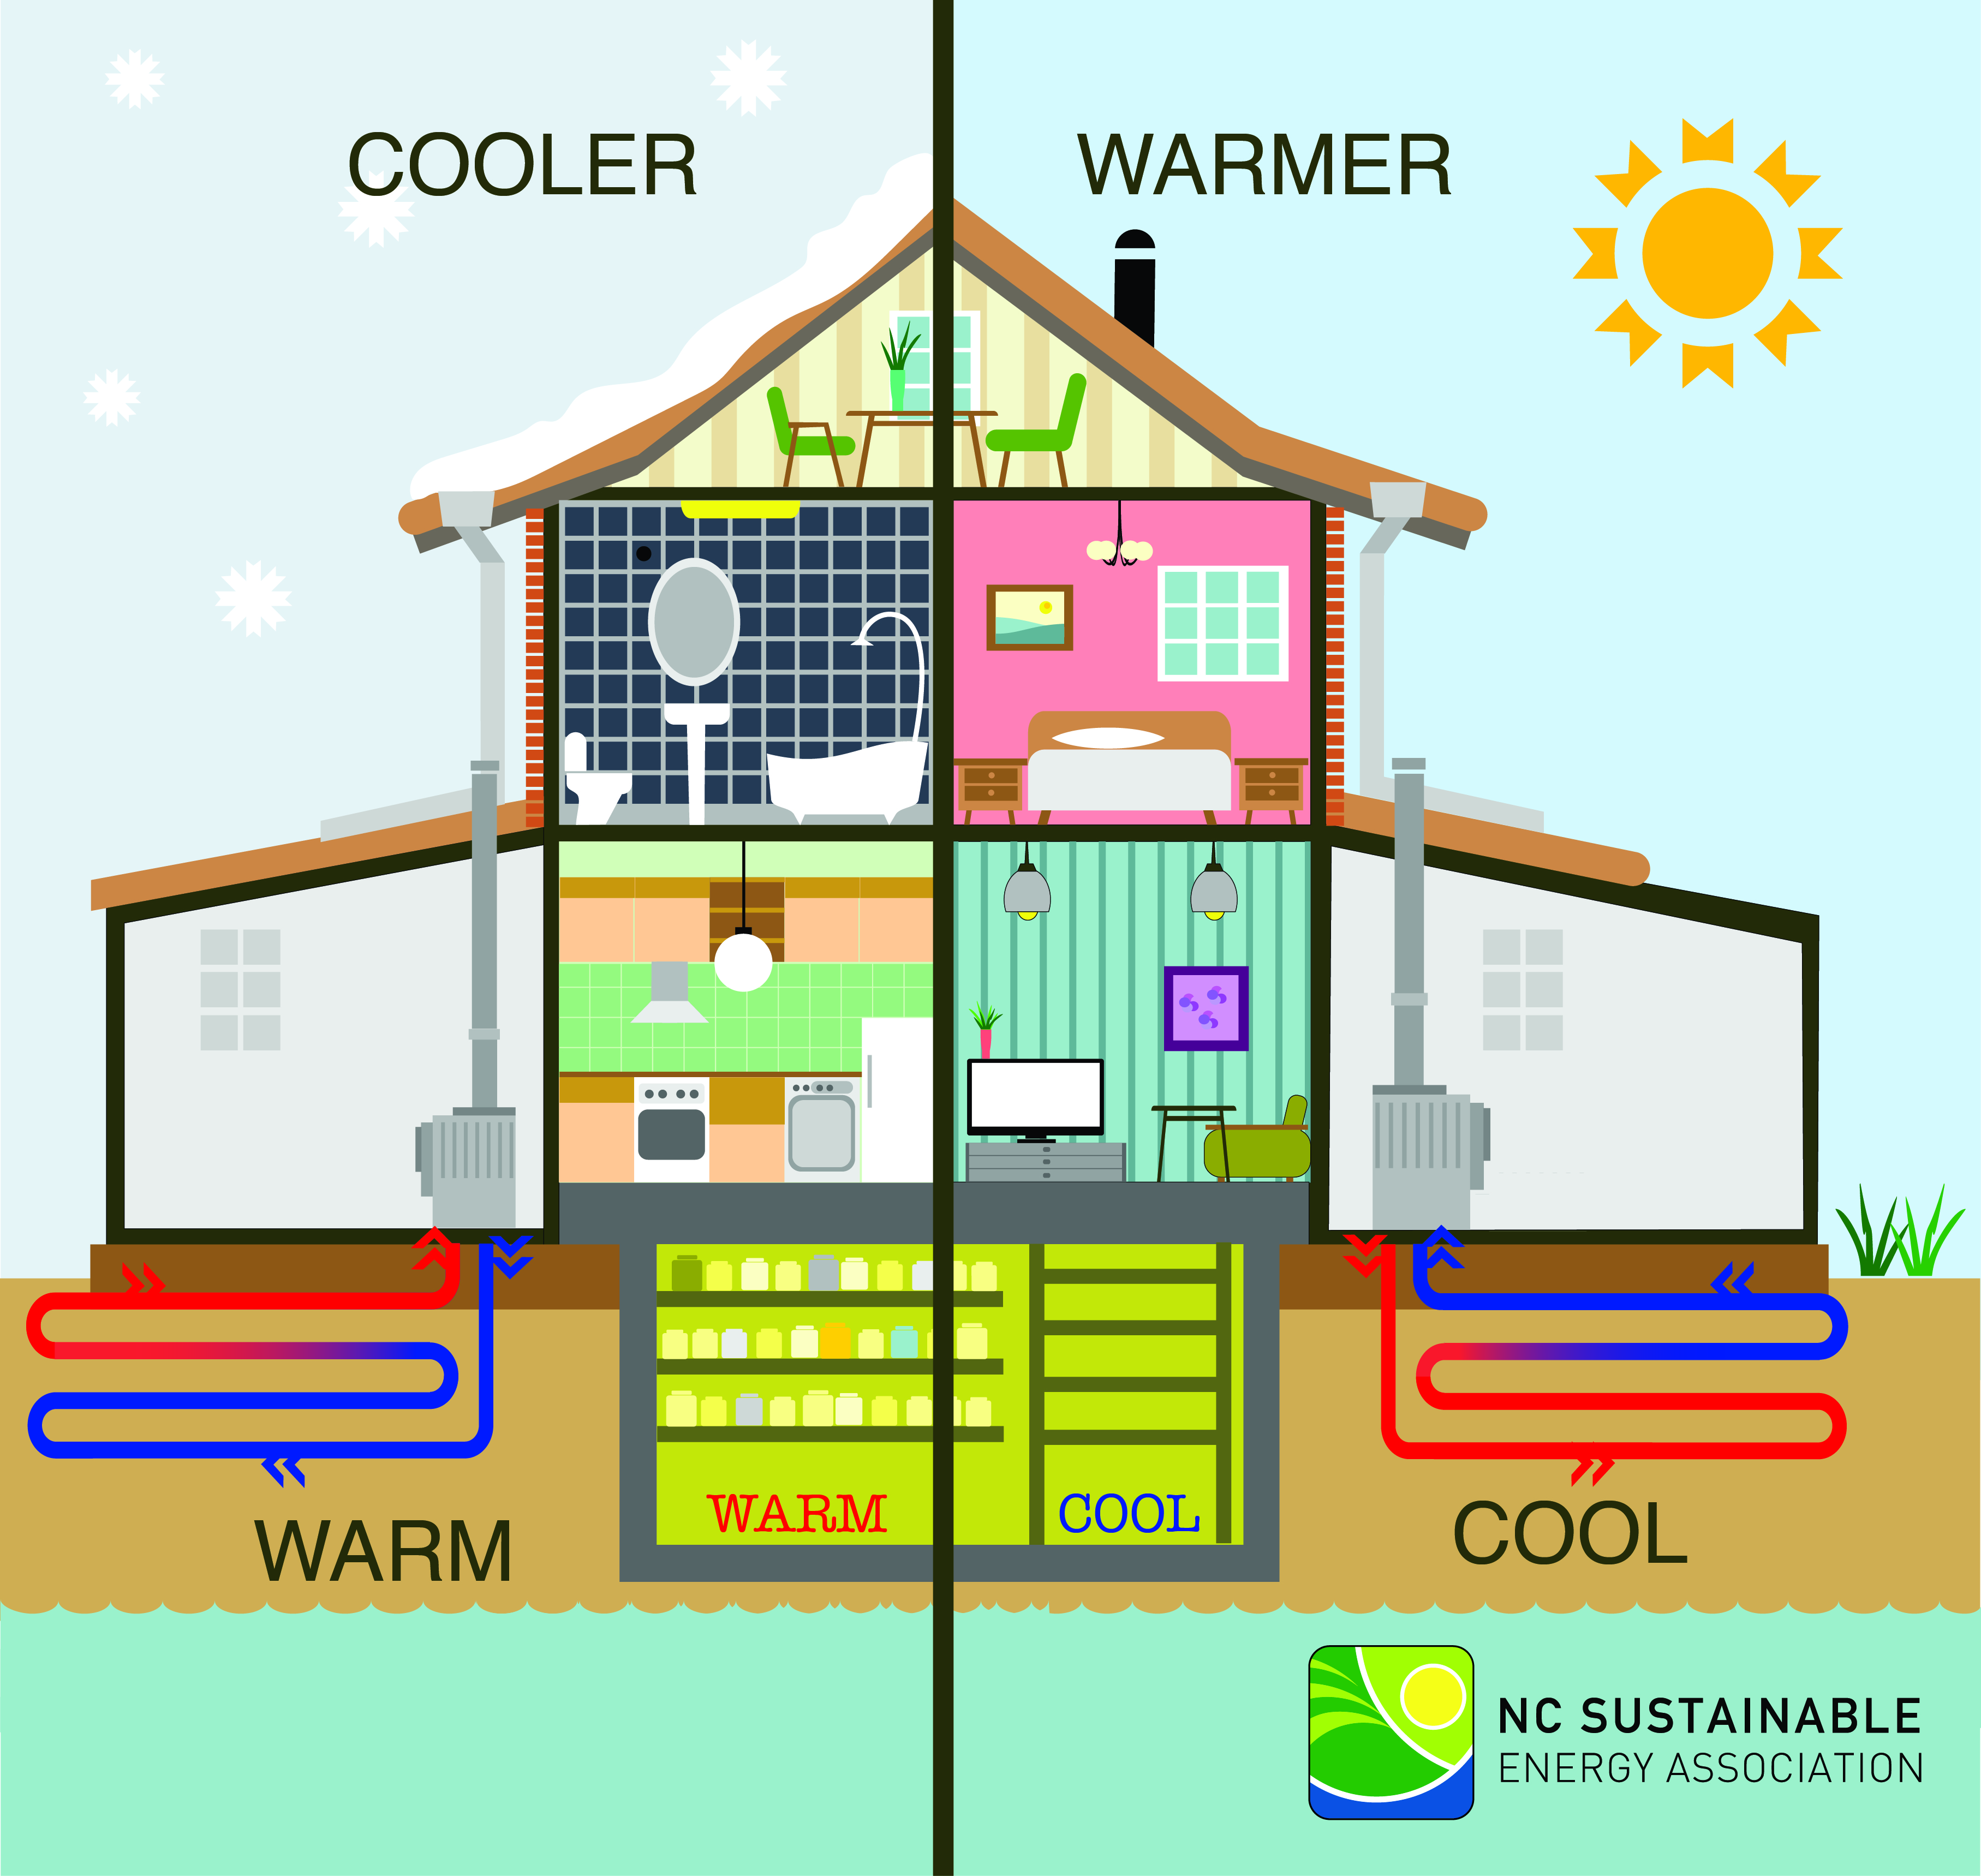 Residential Geothermal Heating And Cooling : Not often thought on … geothermal energy hypergeometric